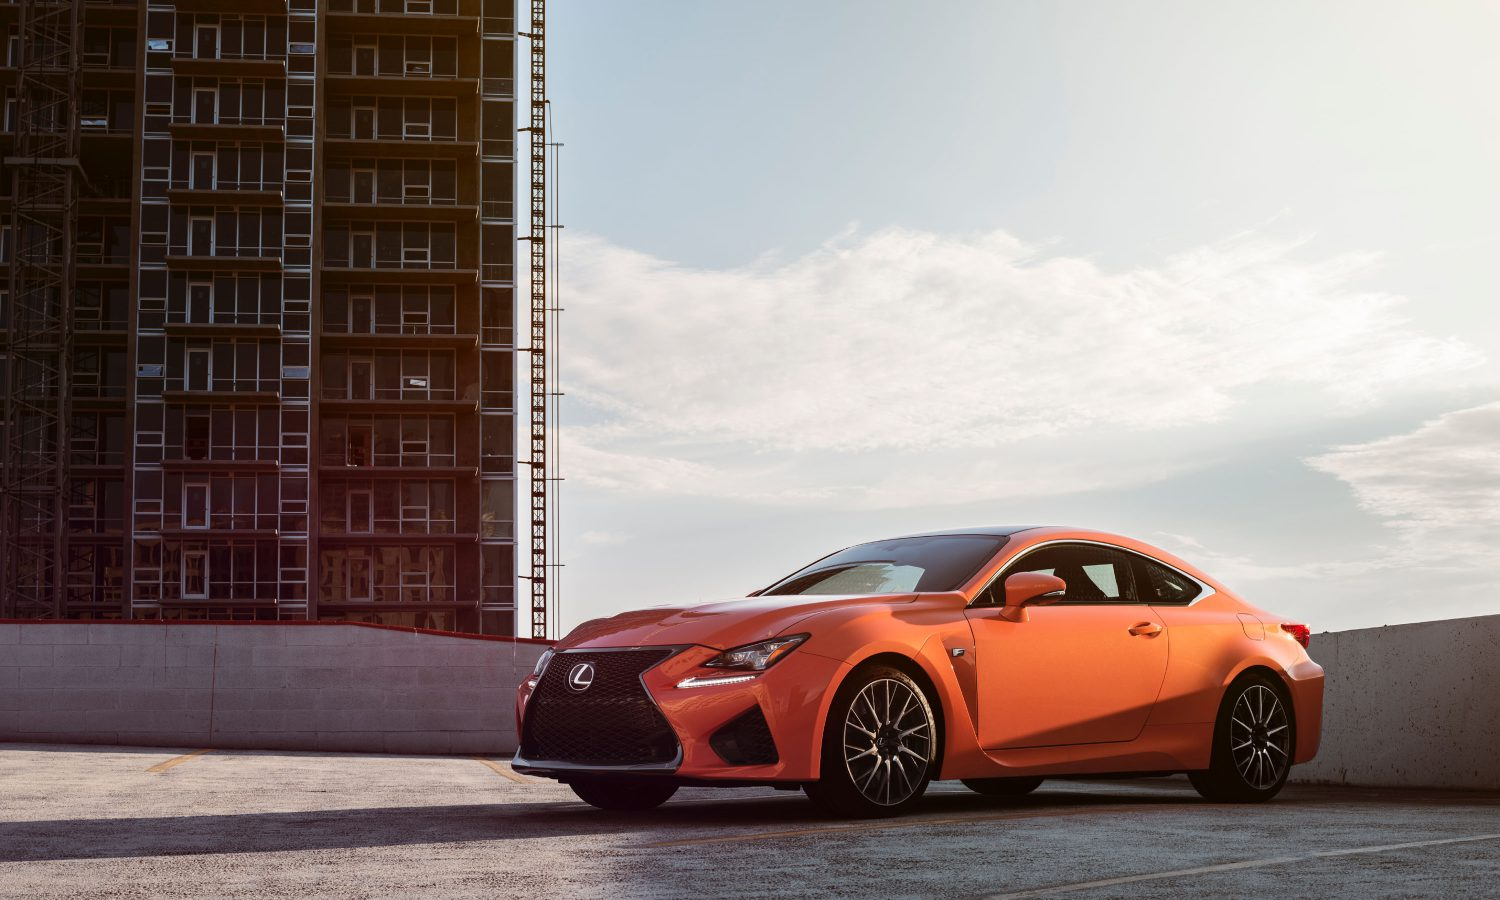 The F Strikes Again: Lexus Unleashes the 2015 RC F, A 467 hp Firestorm on Forged Alloy Wheels